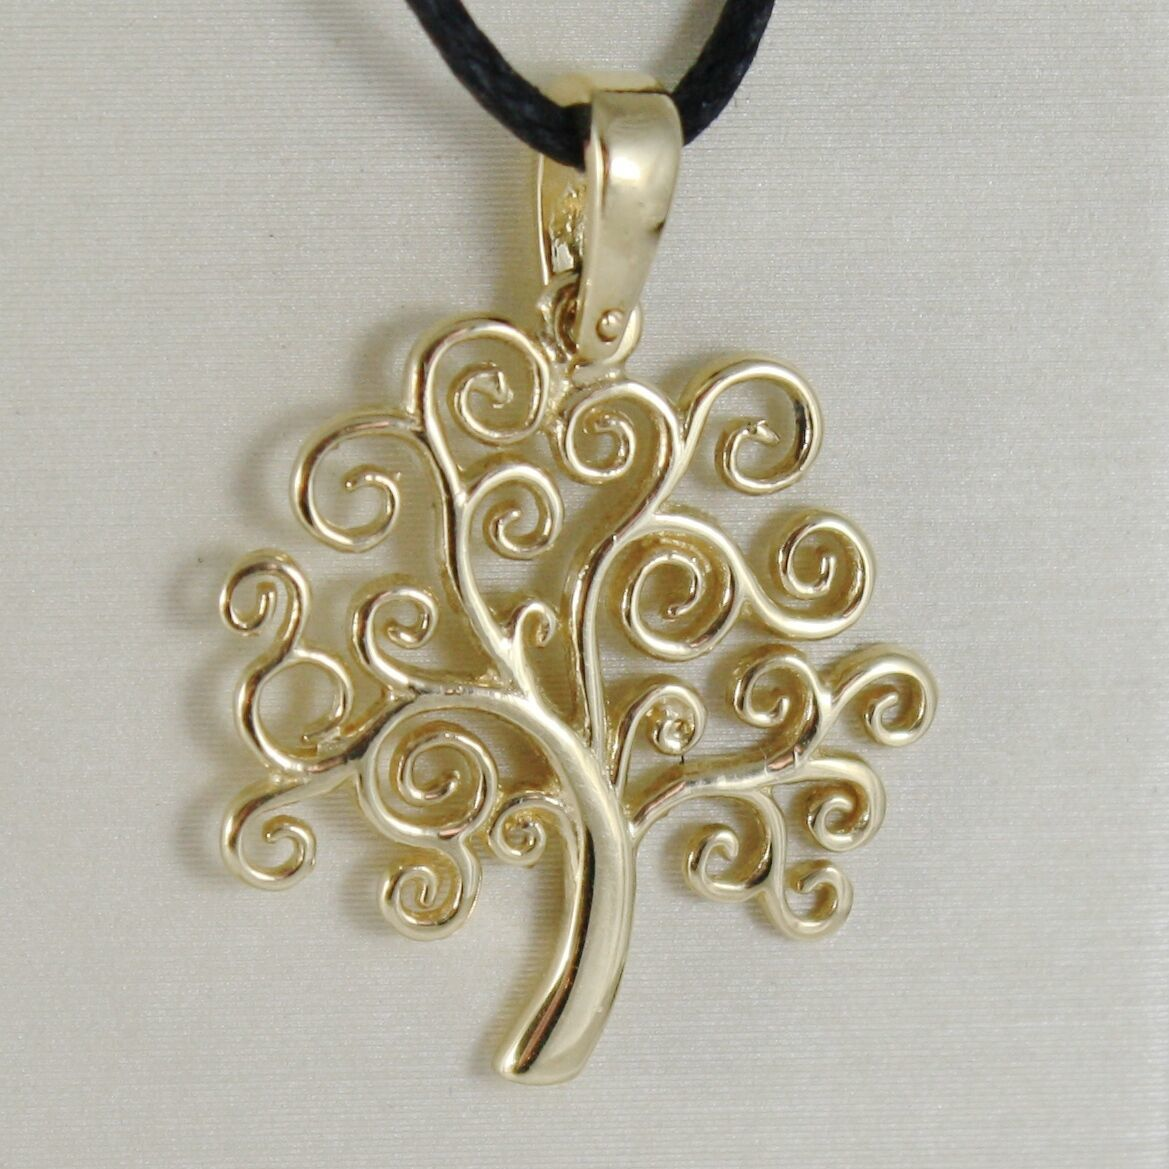 18K YELLOW GOLD TREE OF LIFE PENDANT, CHARM, 0.95 INCHES, 24 mm, MADE IN ITALY